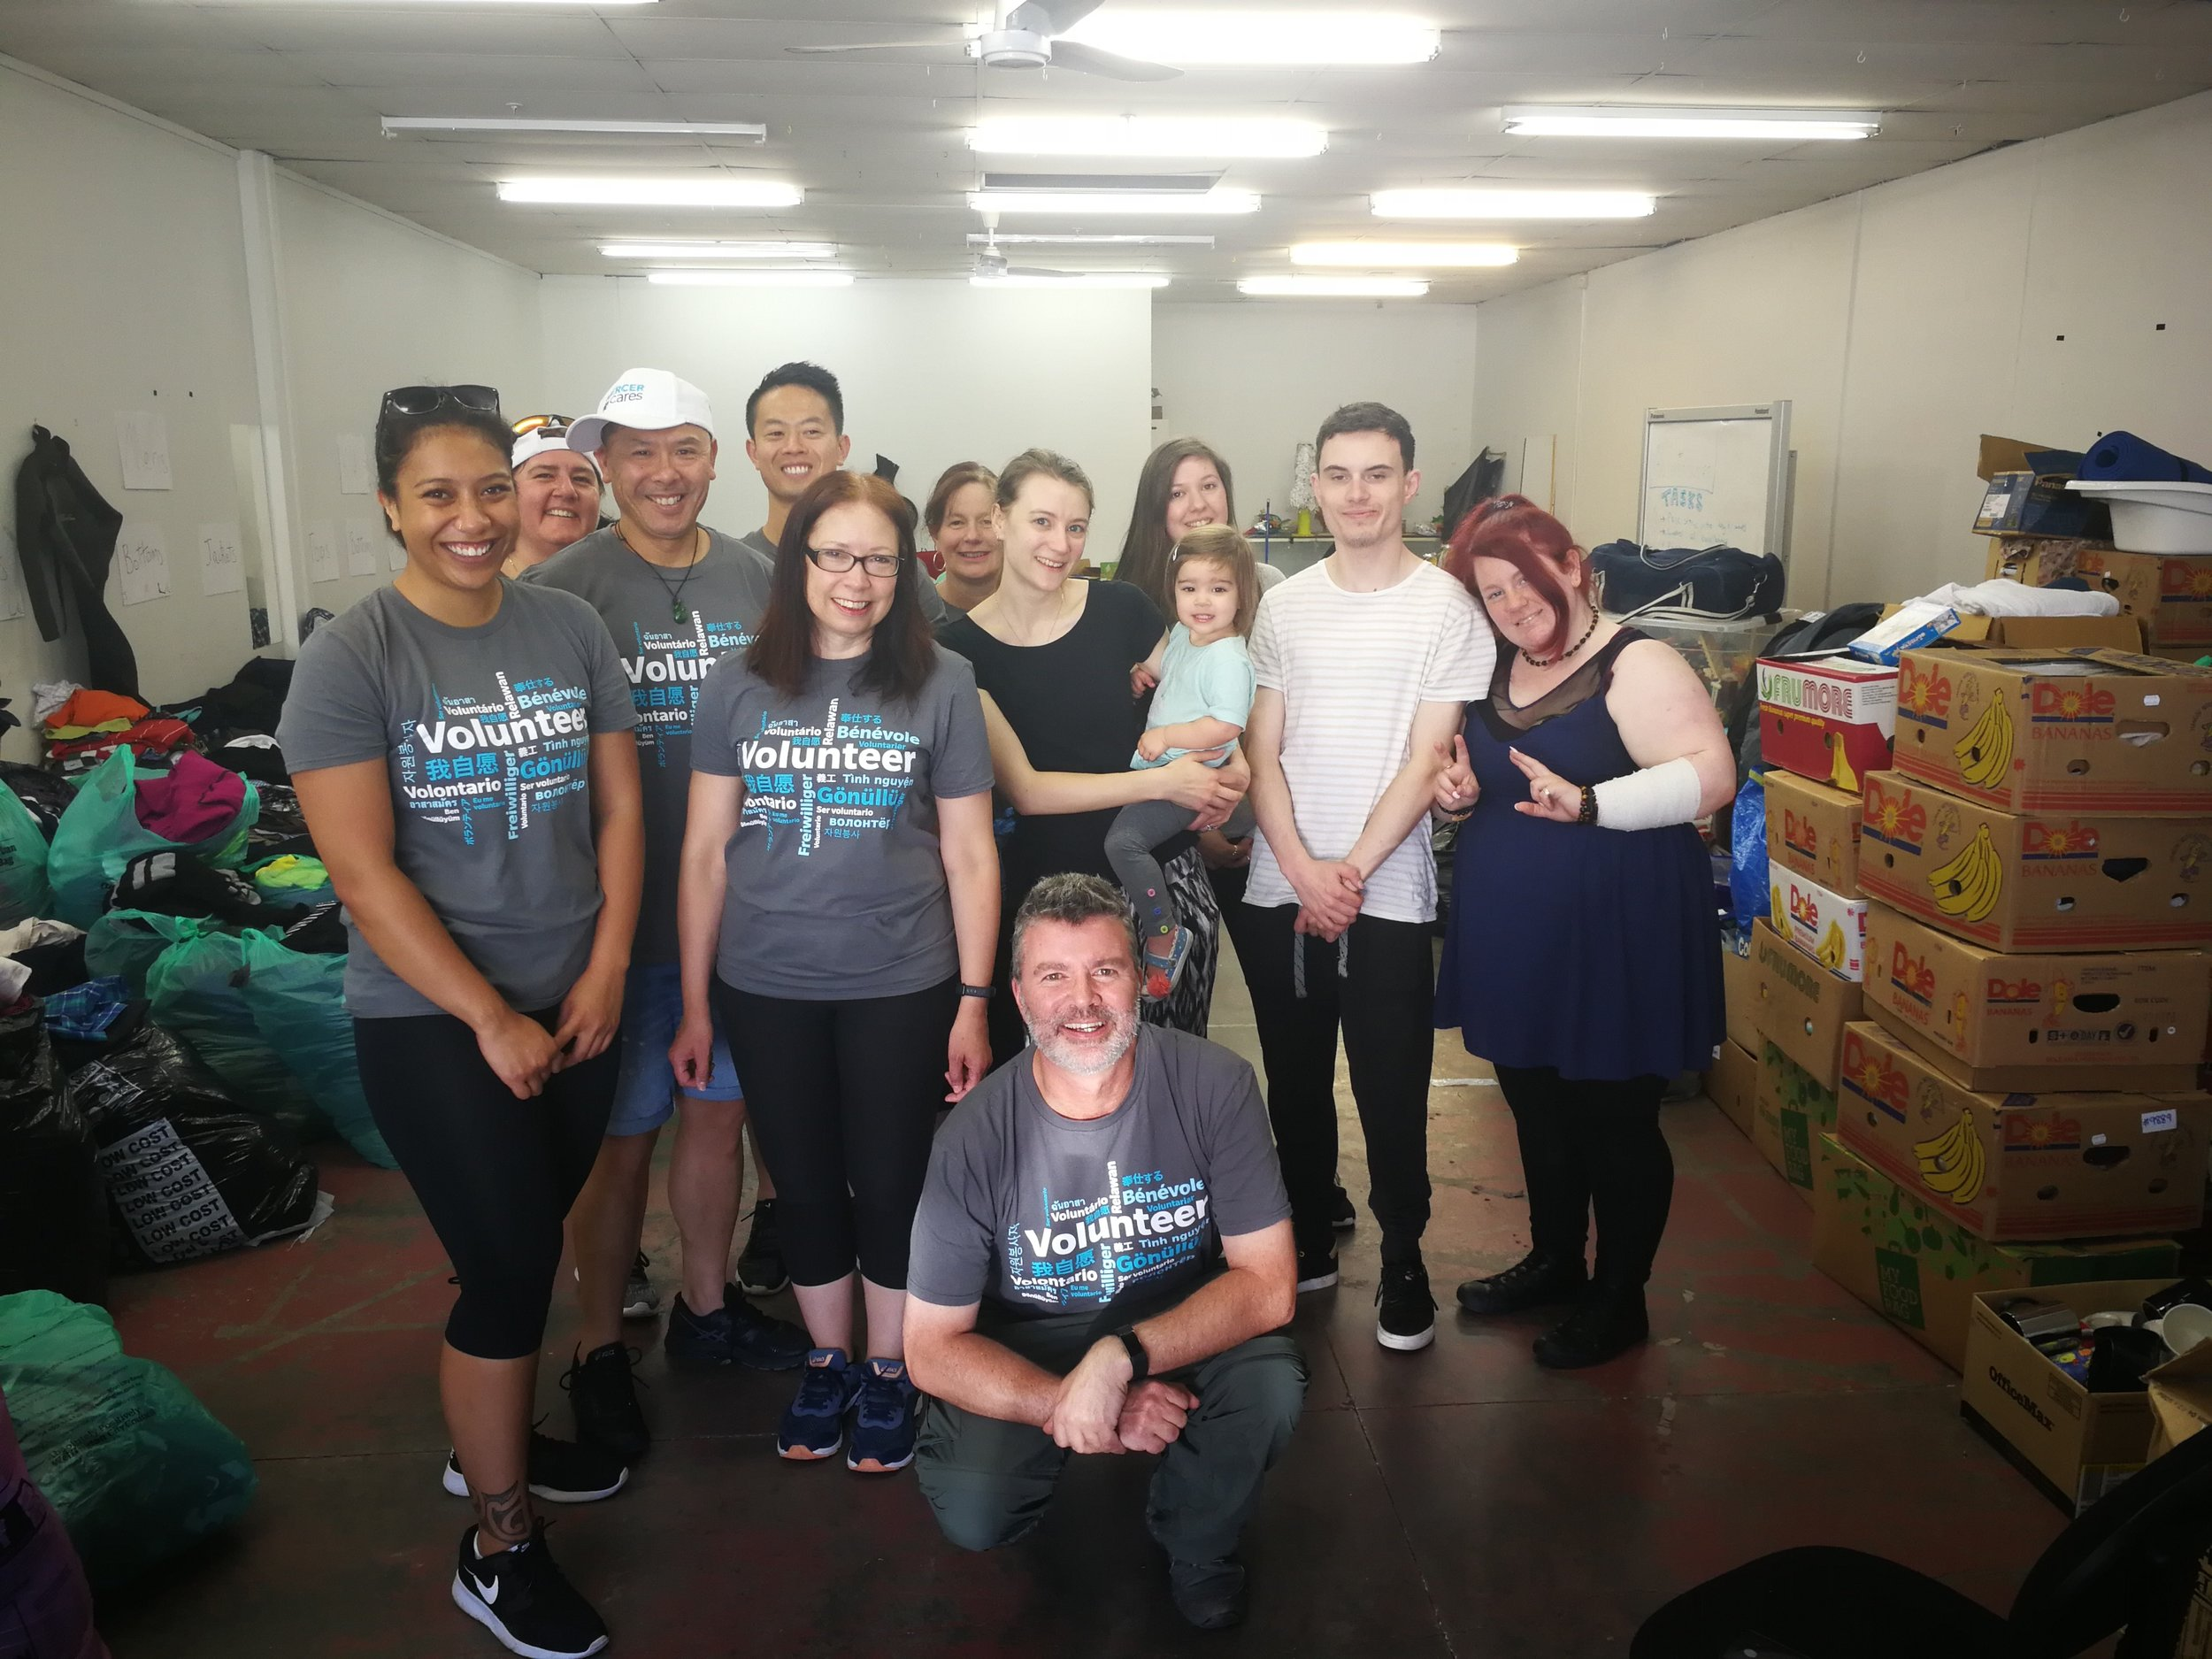 Mercer Ltd and Treehouse Volunteers at the Pop-Up Shop prep day.